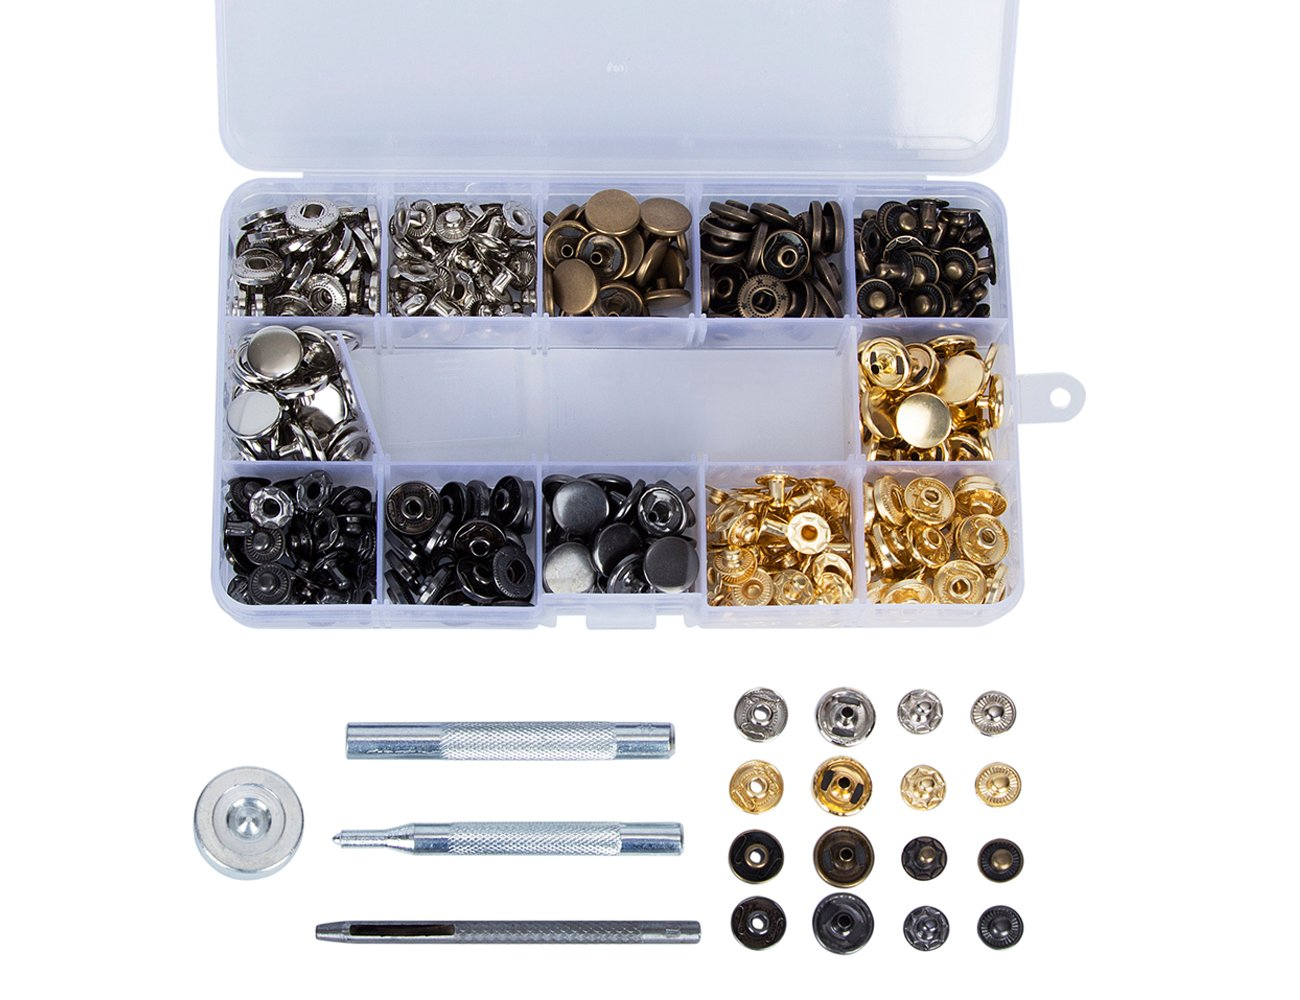 100 Set Copper Snap Fasteners Press Studs Poppers No Sewing Leather Rivets Kit Clothing Button with 4 Pieces Fixing Tool (12.5 mm) Hakkin